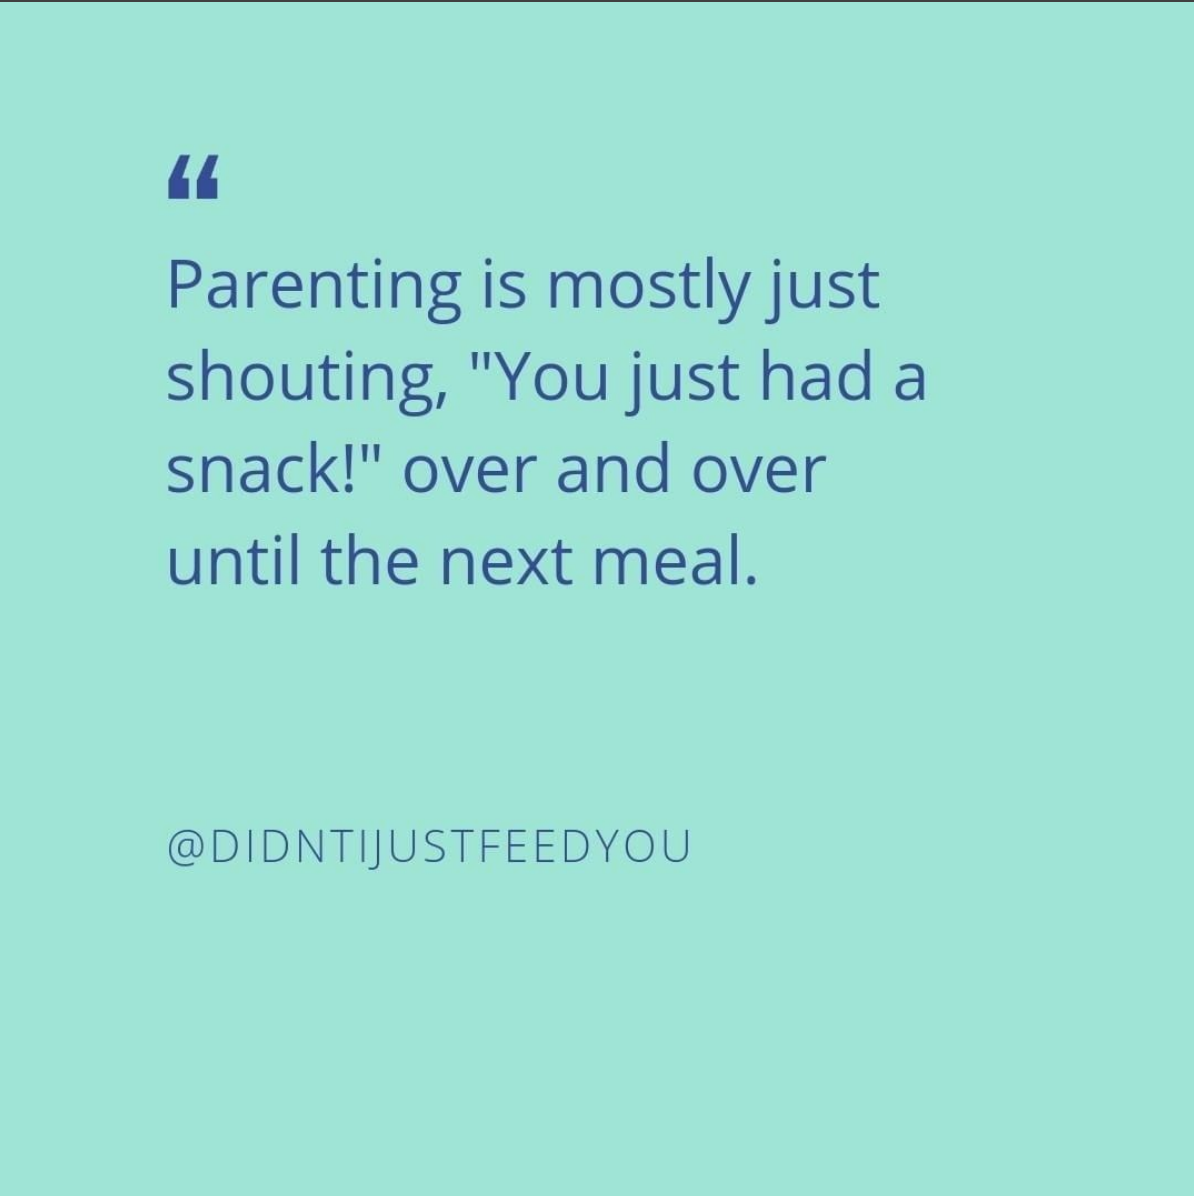 @didntijustfeedyou on Instagram - real food advice from real parents